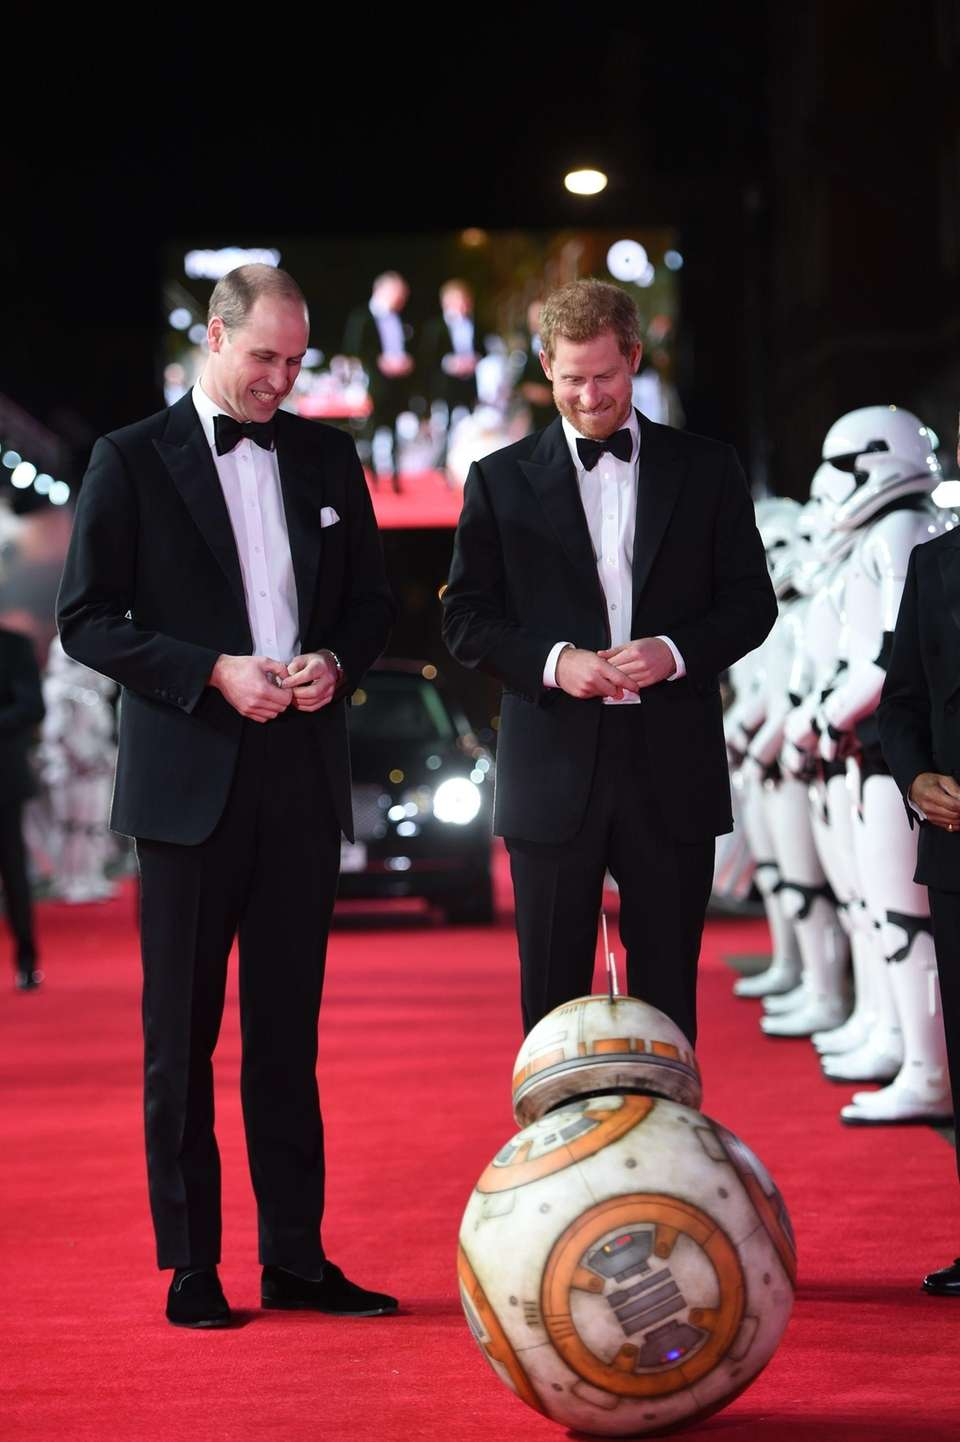 Prince William, left, and Prince Harry are greeted